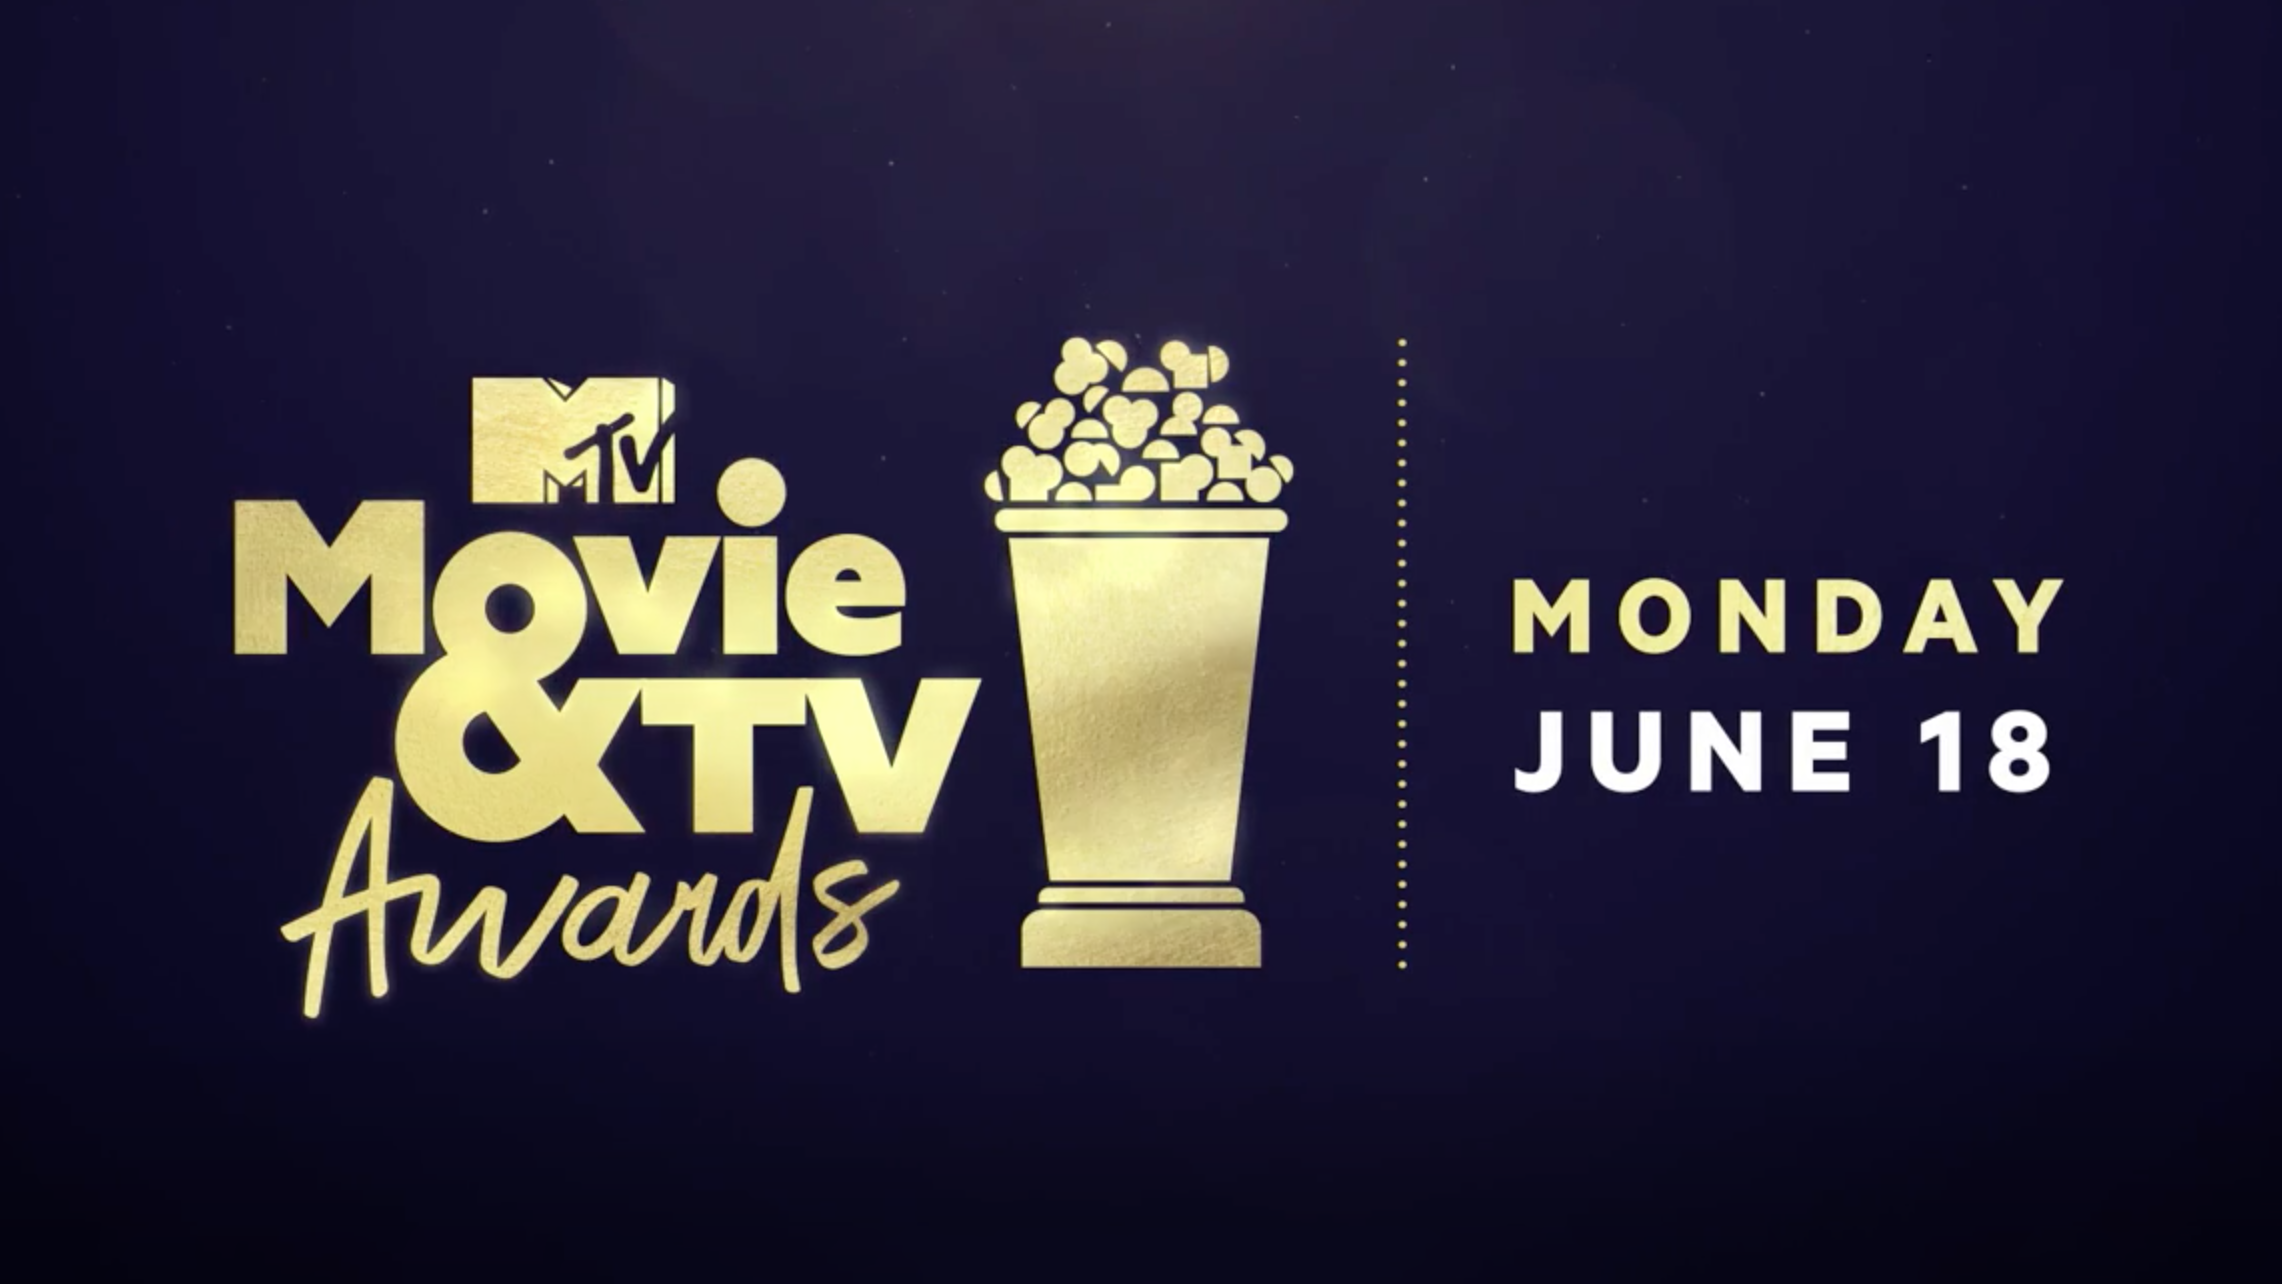 mtv_movietv_awards.png